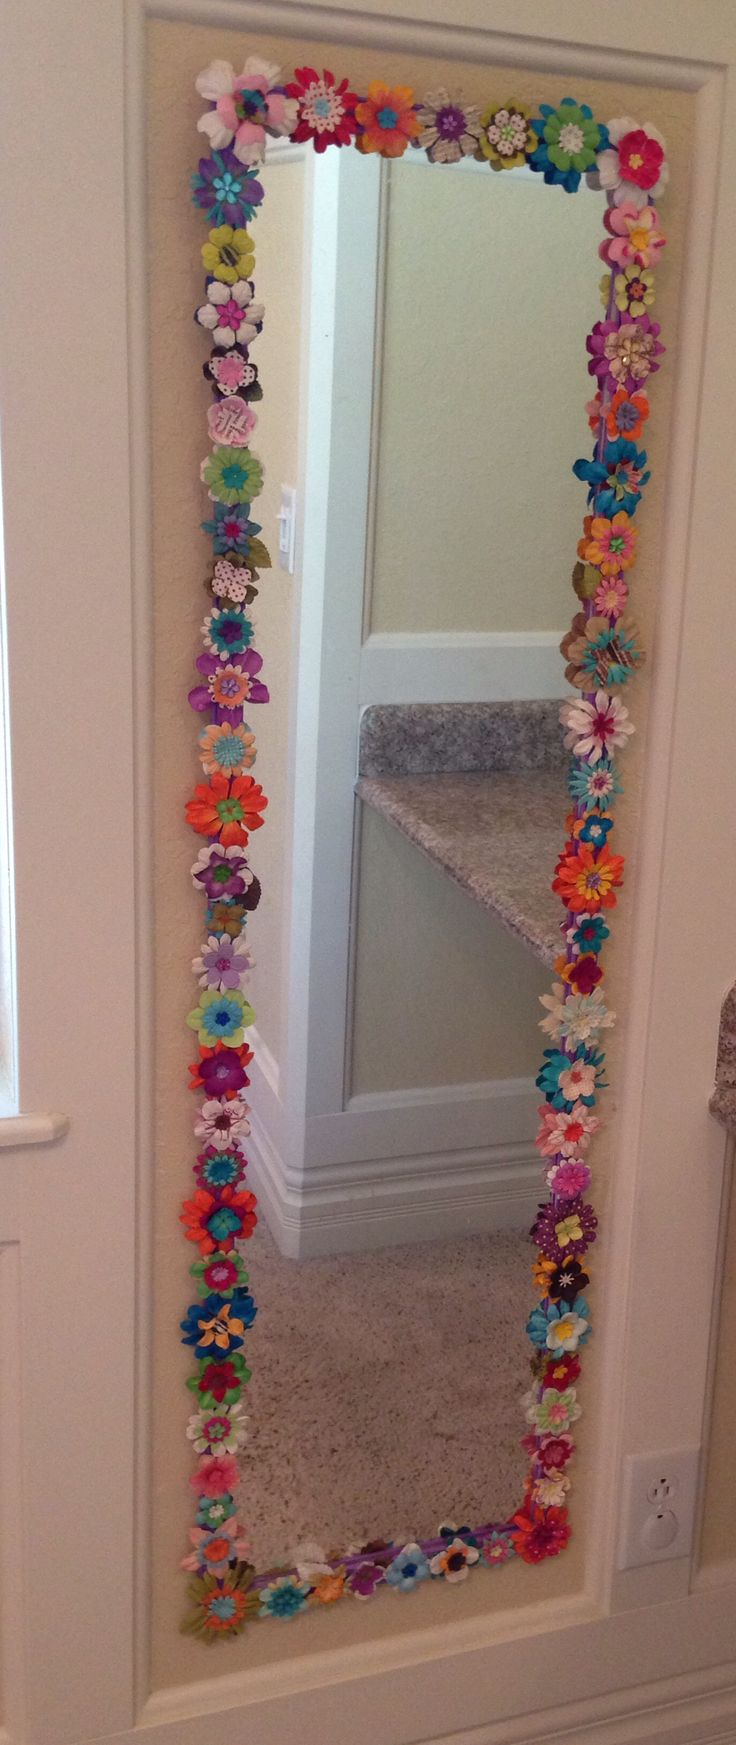 140 best images about mirror on pinterest diy bathroom for What kind of paint to use on kitchen cabinets for flower mirror wall art